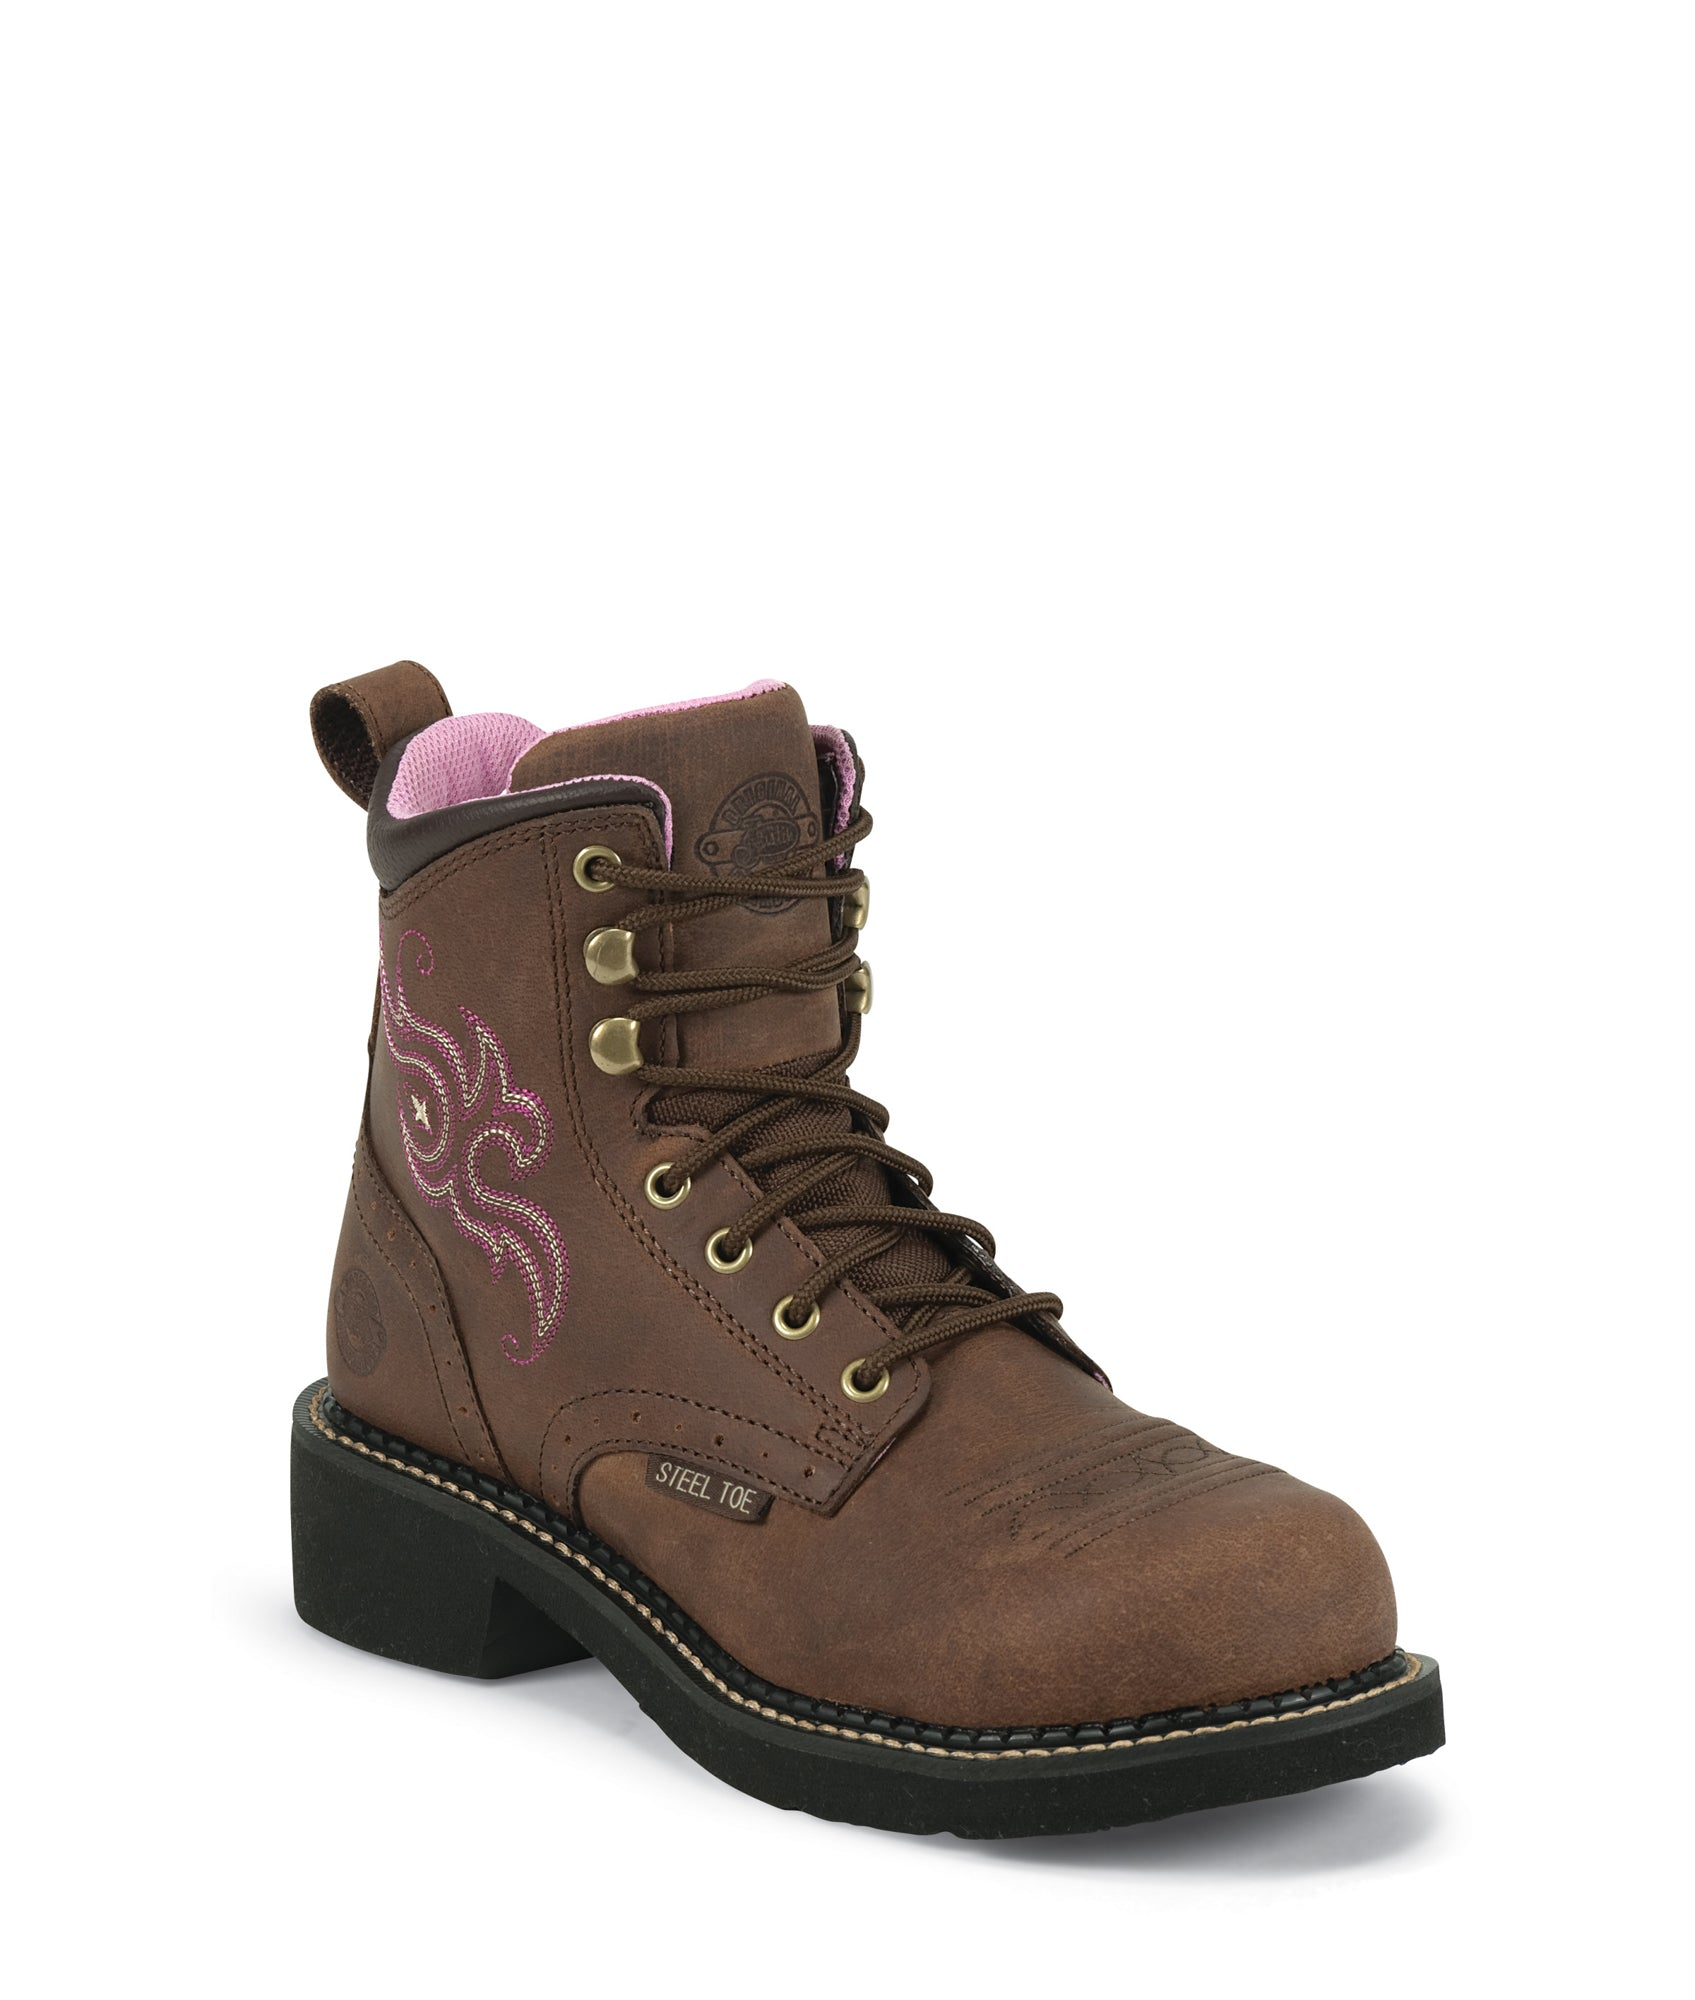 justin women's lace up work boots